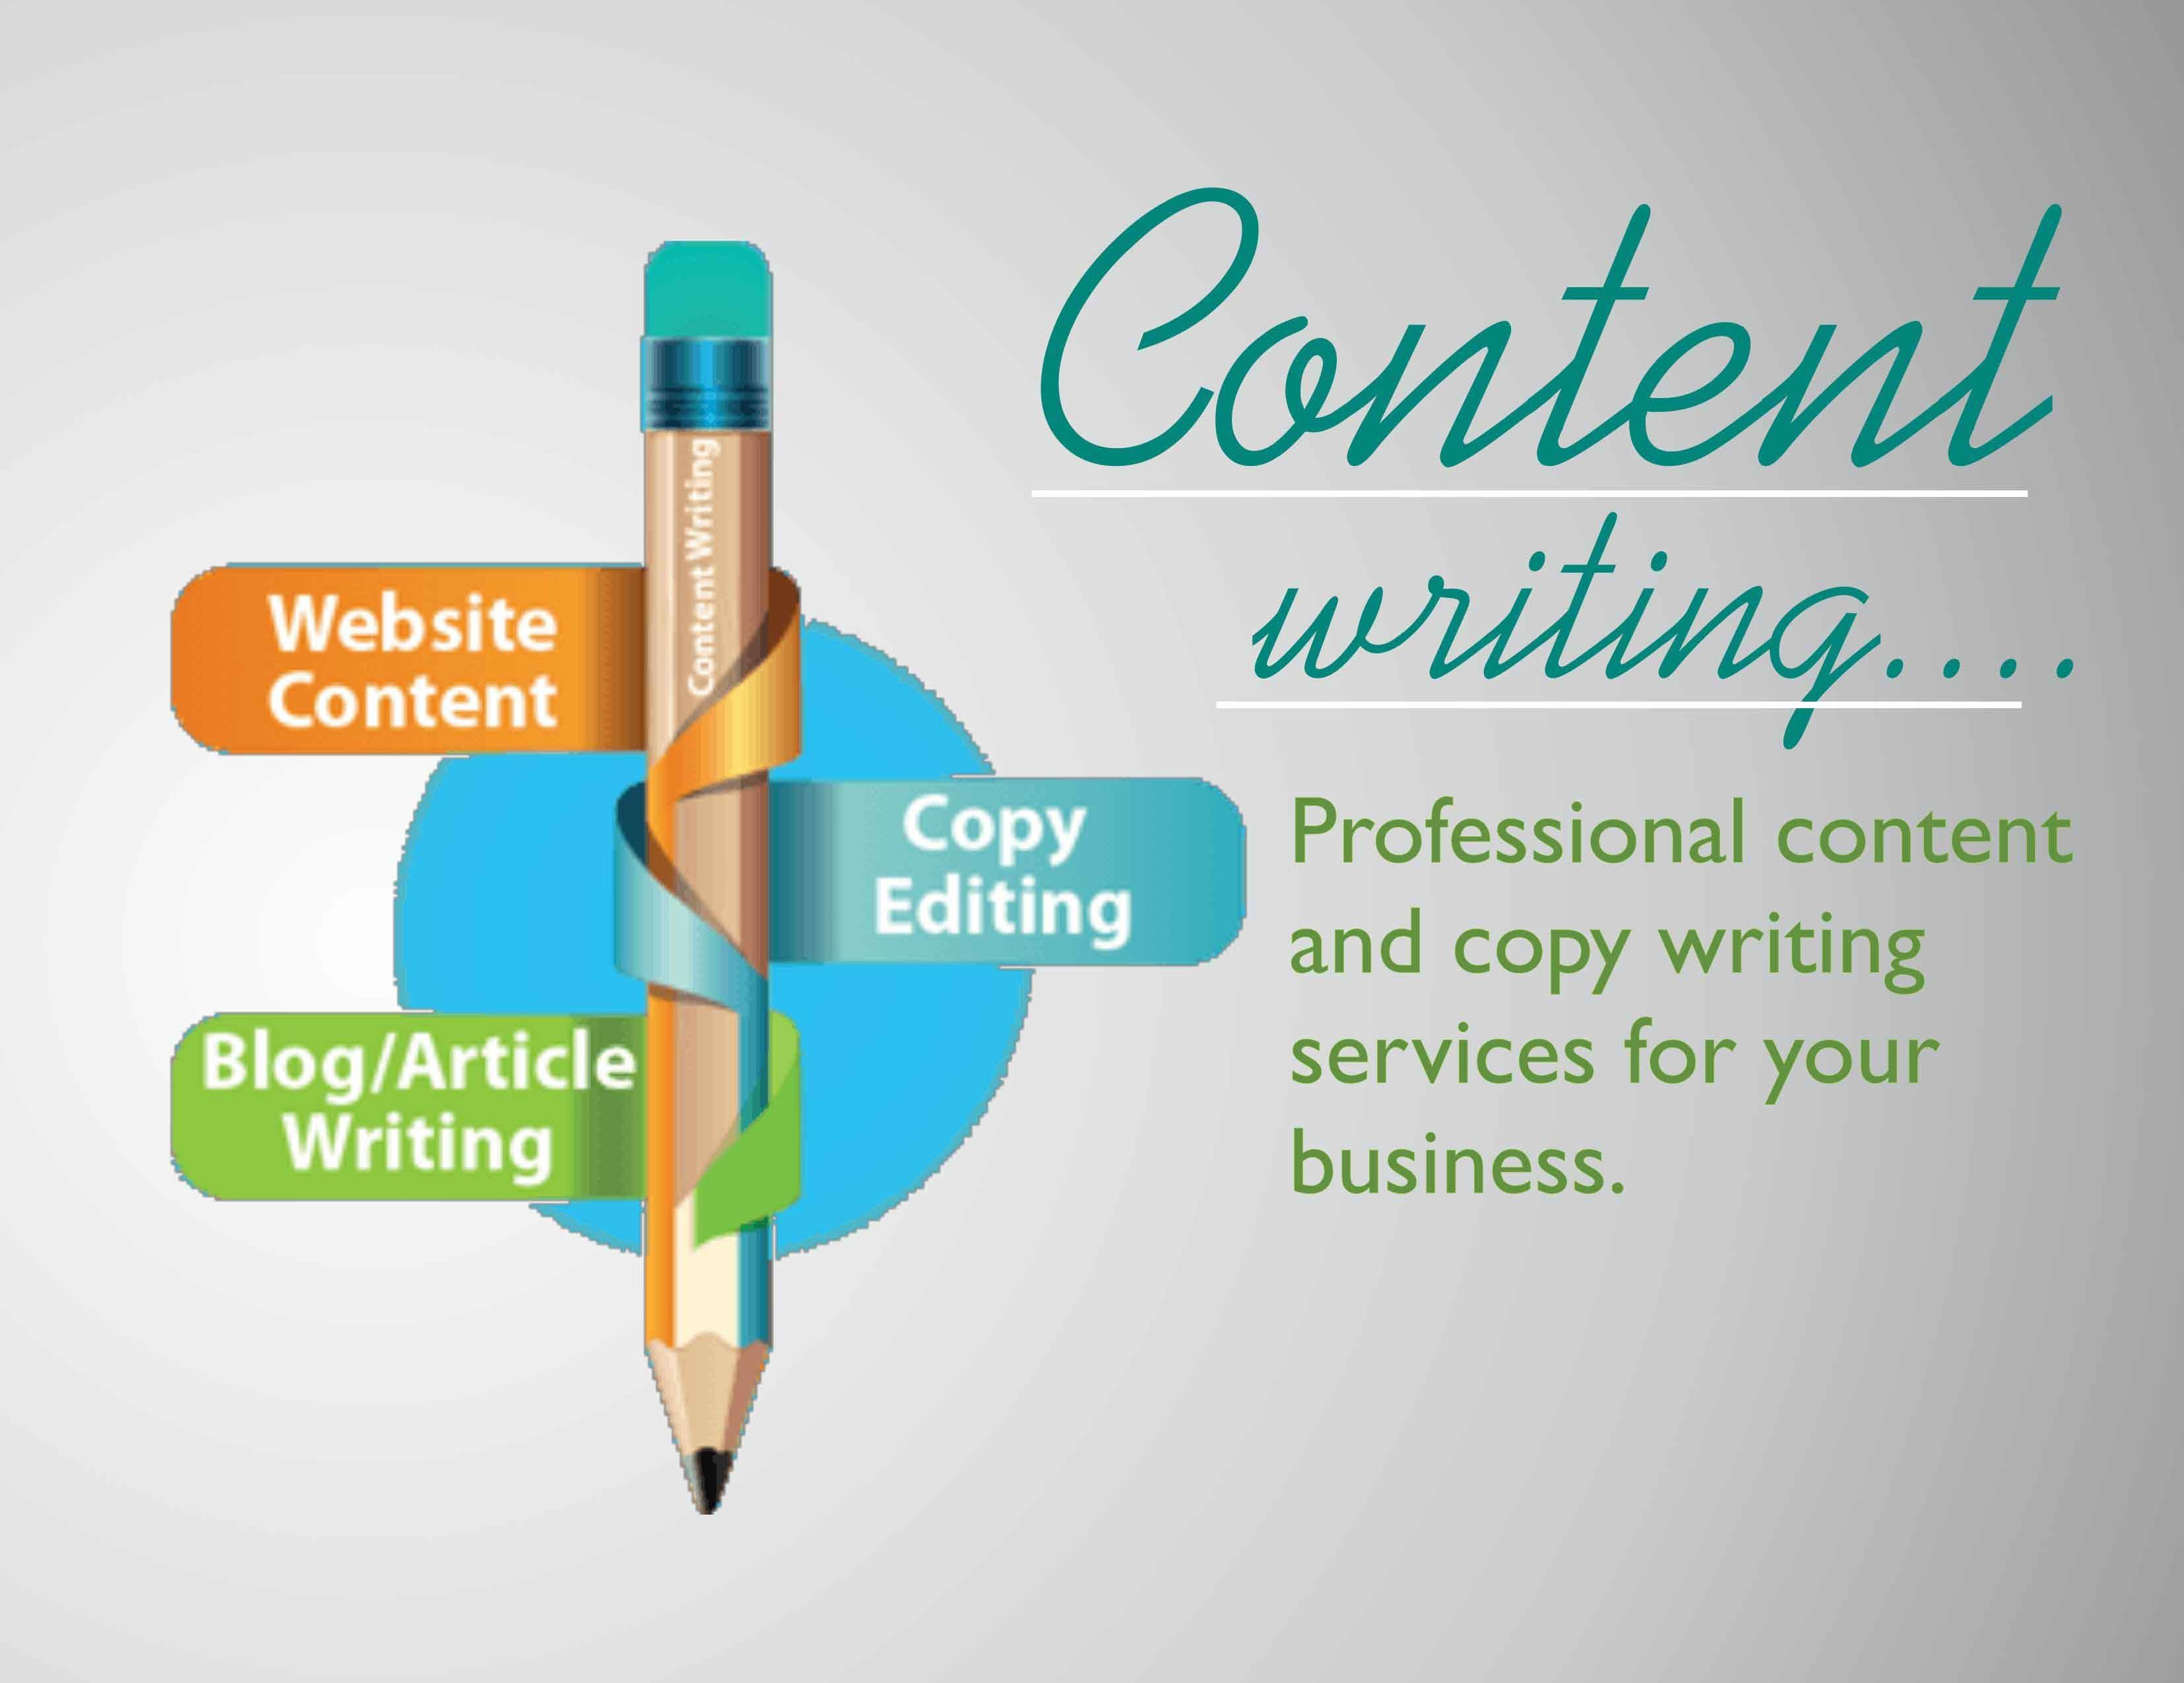 Content Writing Services - Lowest Possible Industry Rate!!! | SEO Professional | Blog writing, Website content writing, Content writing